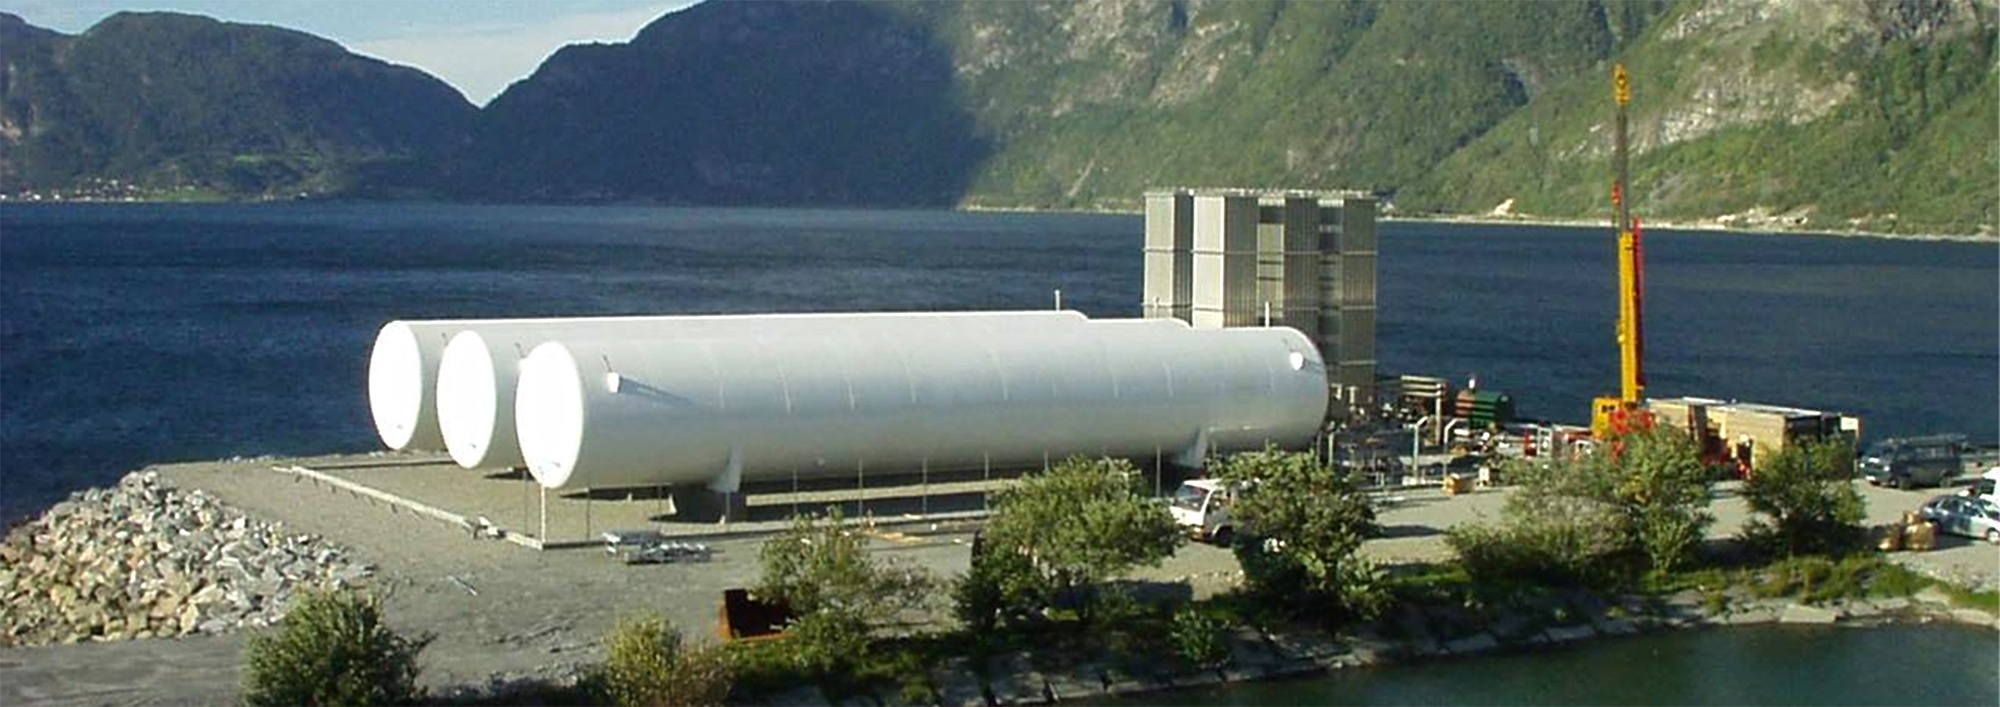 LNG Storage Tanks - Cryogenic Storage Vessels - for Sale - LNG storage EPC.jpg